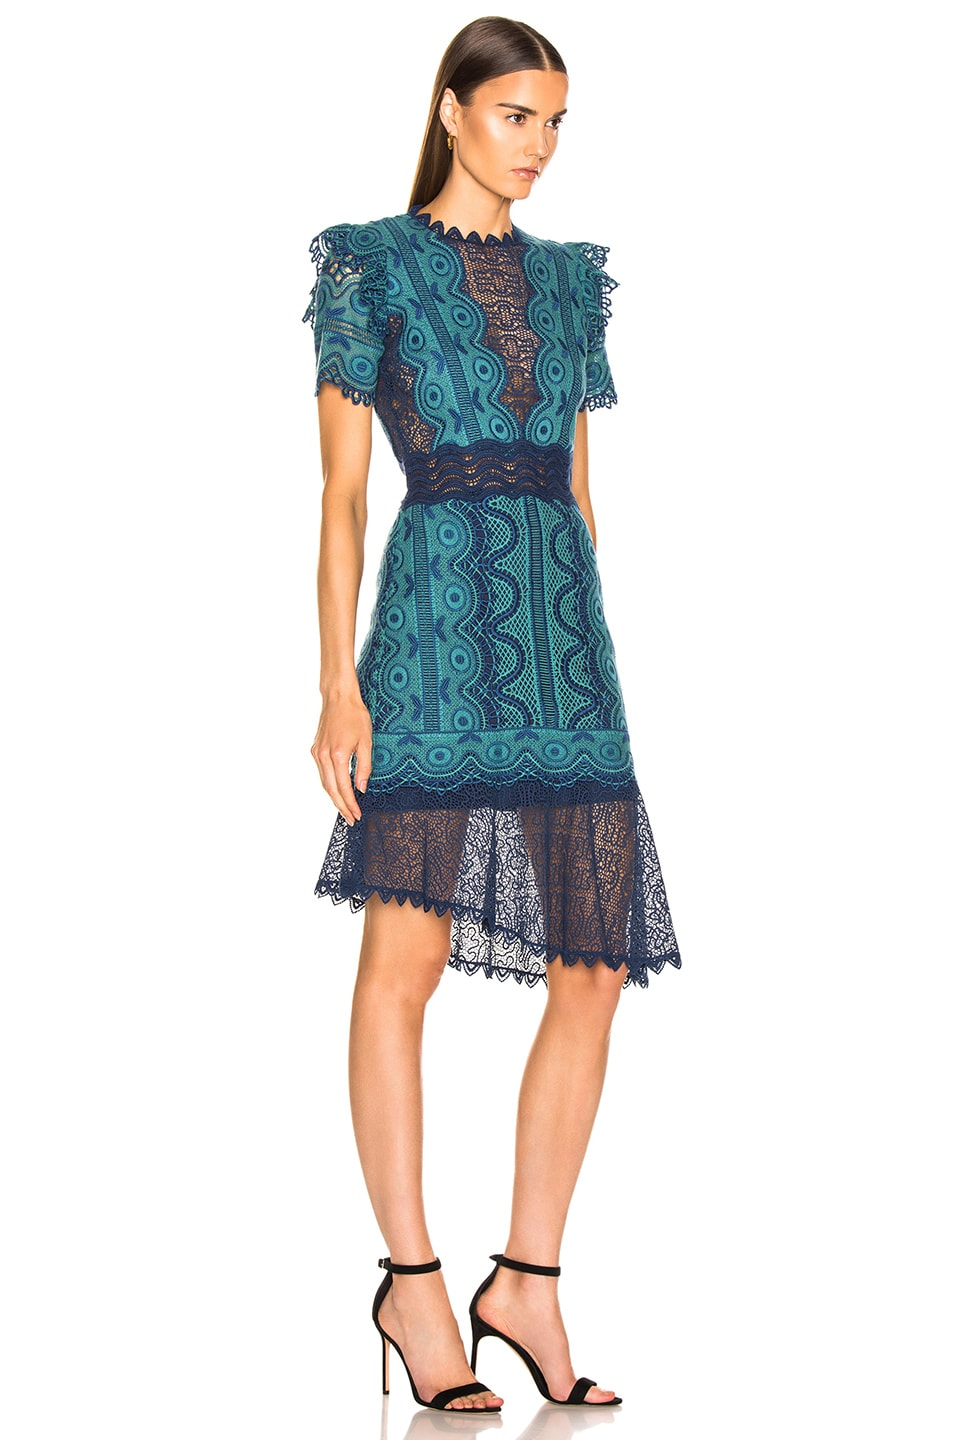 Image 2 of Sea Lola Lace Short Sleeve Dress in Teal Blue Multi